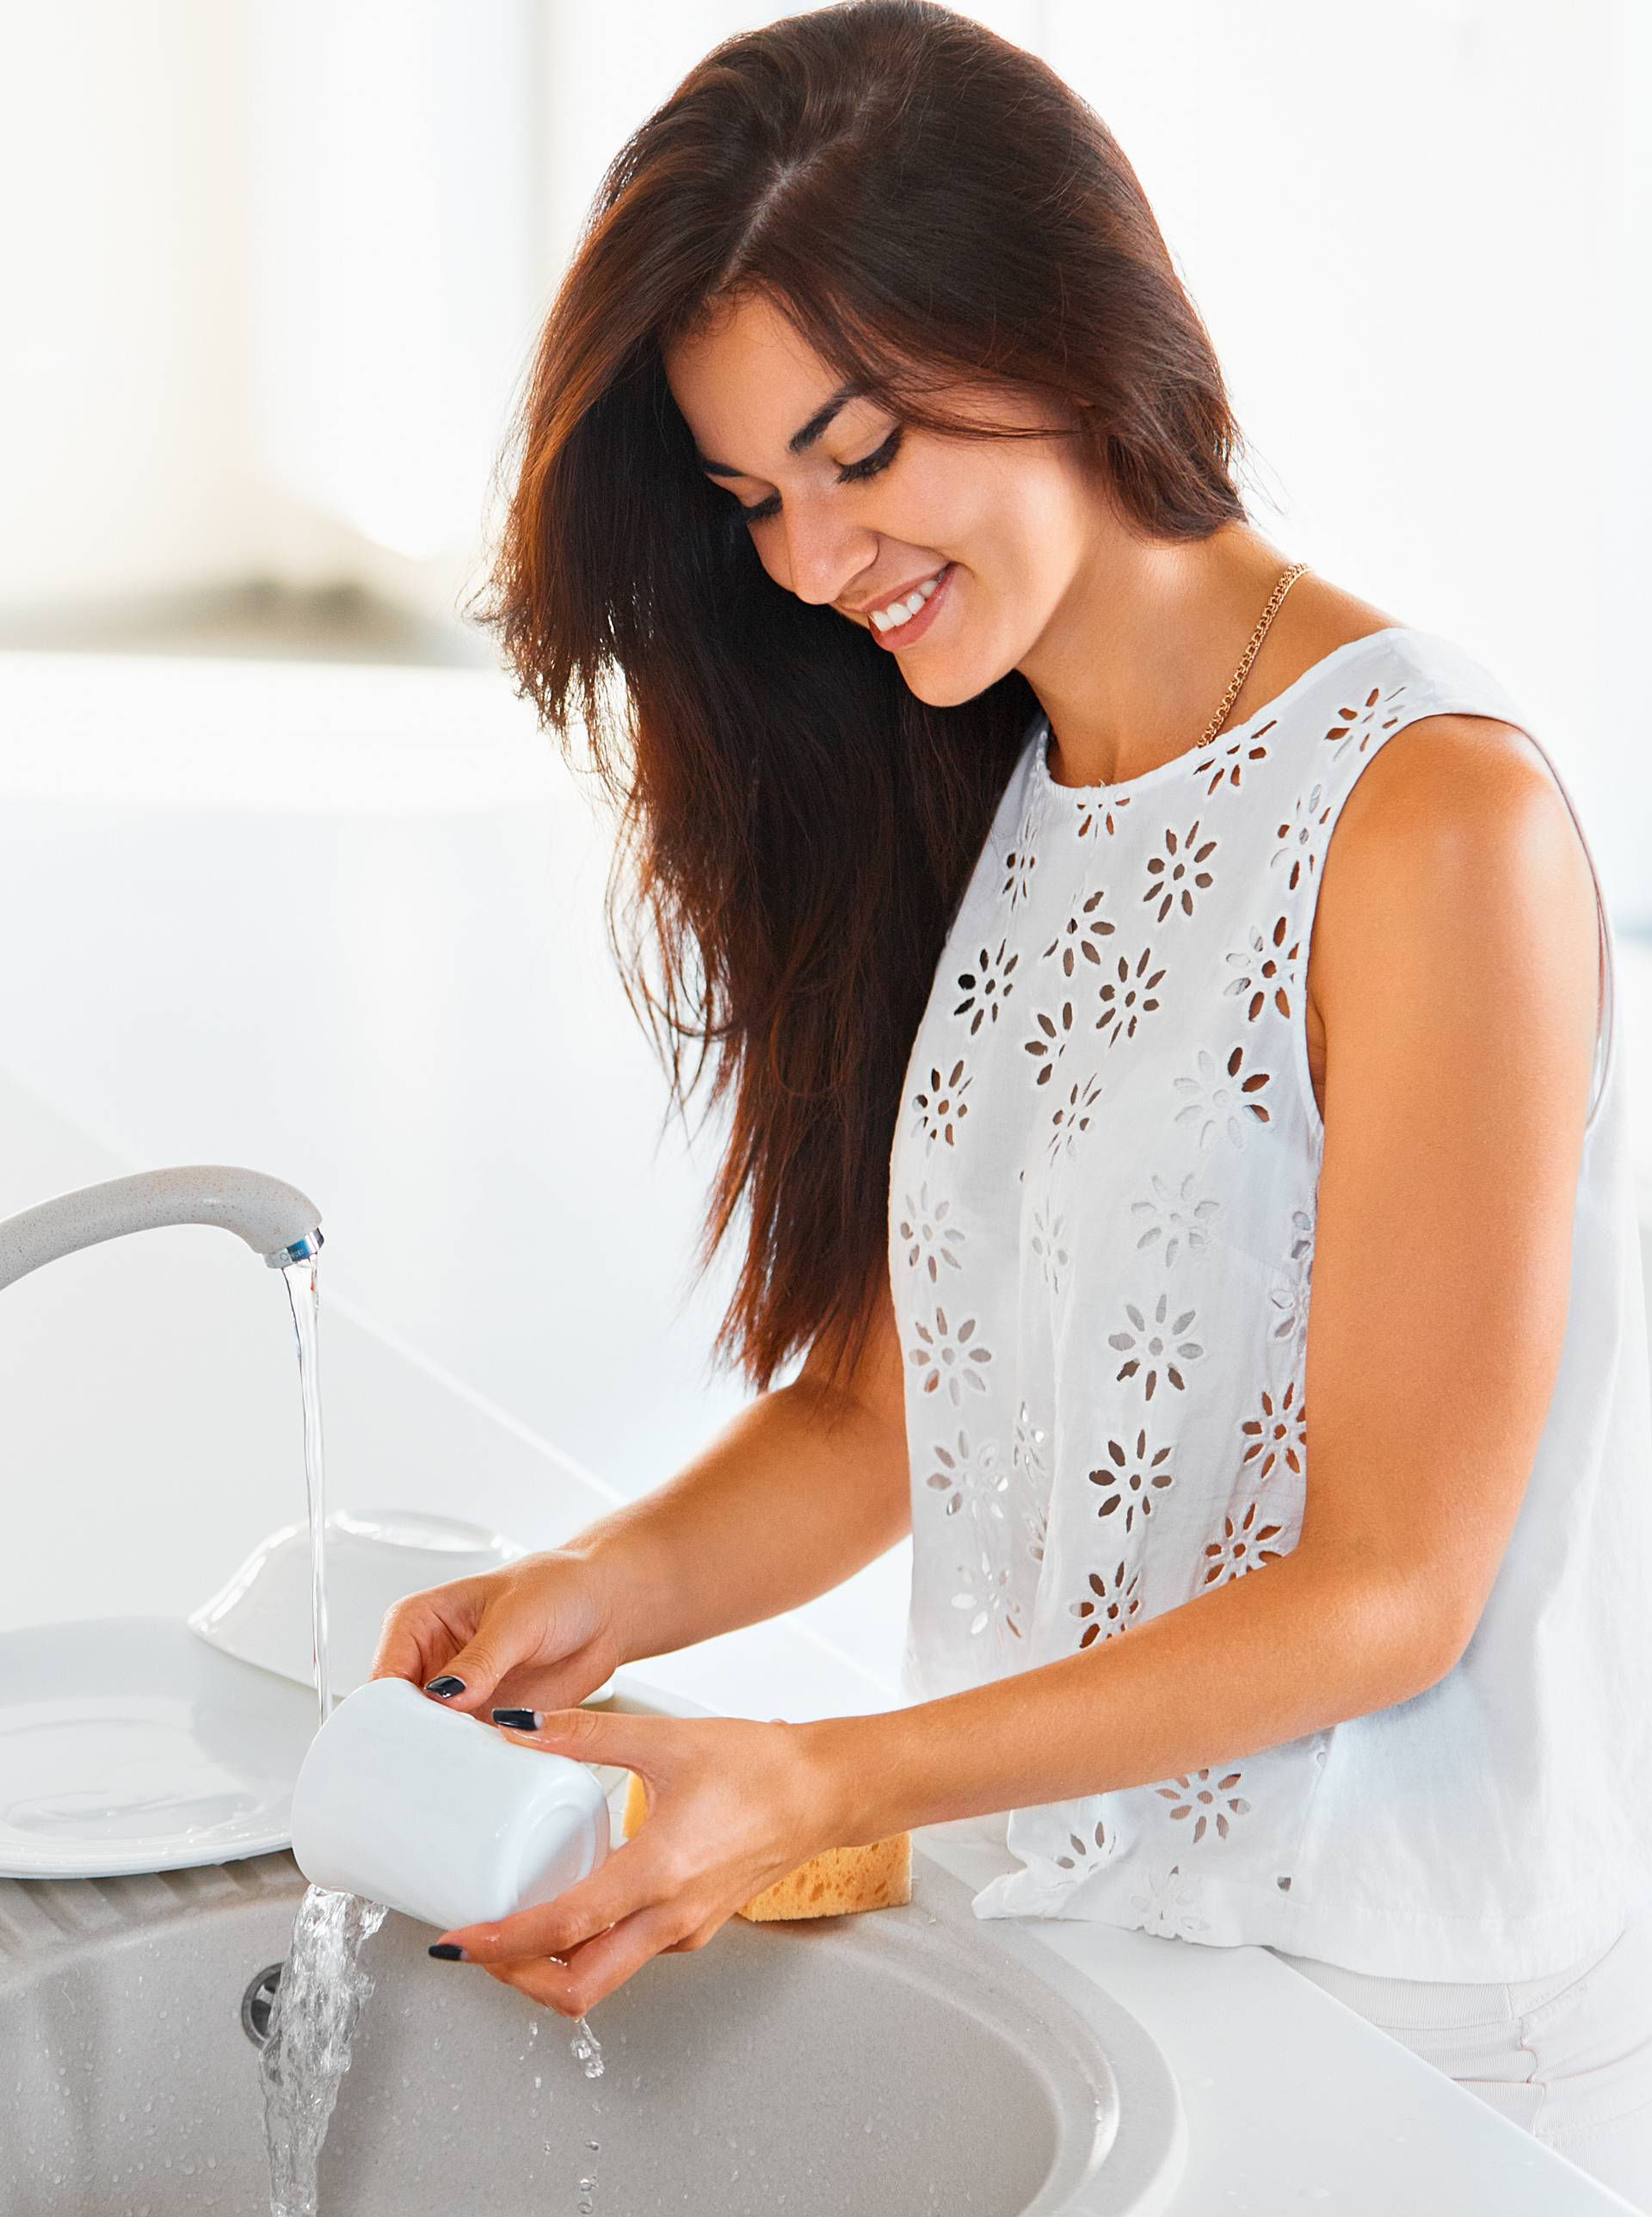 Woman washing a cup in white kitchen. Vegetables